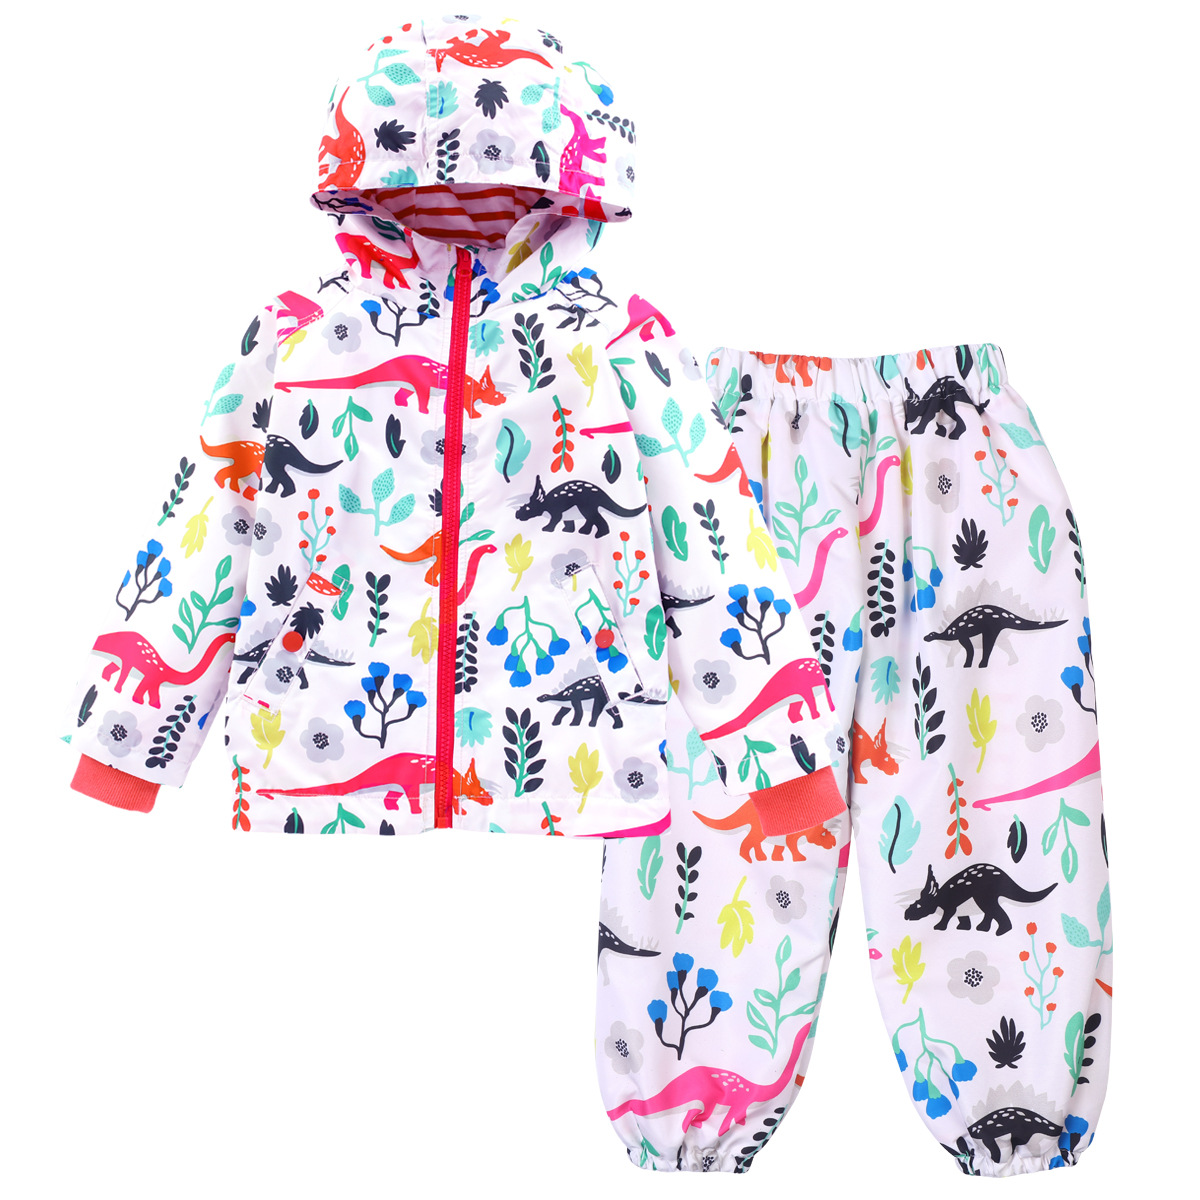 Kids Cartoon Clothes Suits Dinosaur Hooded Jacket + Casual Pants Two Pieces Boys Girls Sets Spring Autumn Rain Coat Tracksuits baby boys sets cartoon dinosaur animal shapes children s clothing spring fall flannel coat with hood pants kids wear 0 2 yrs